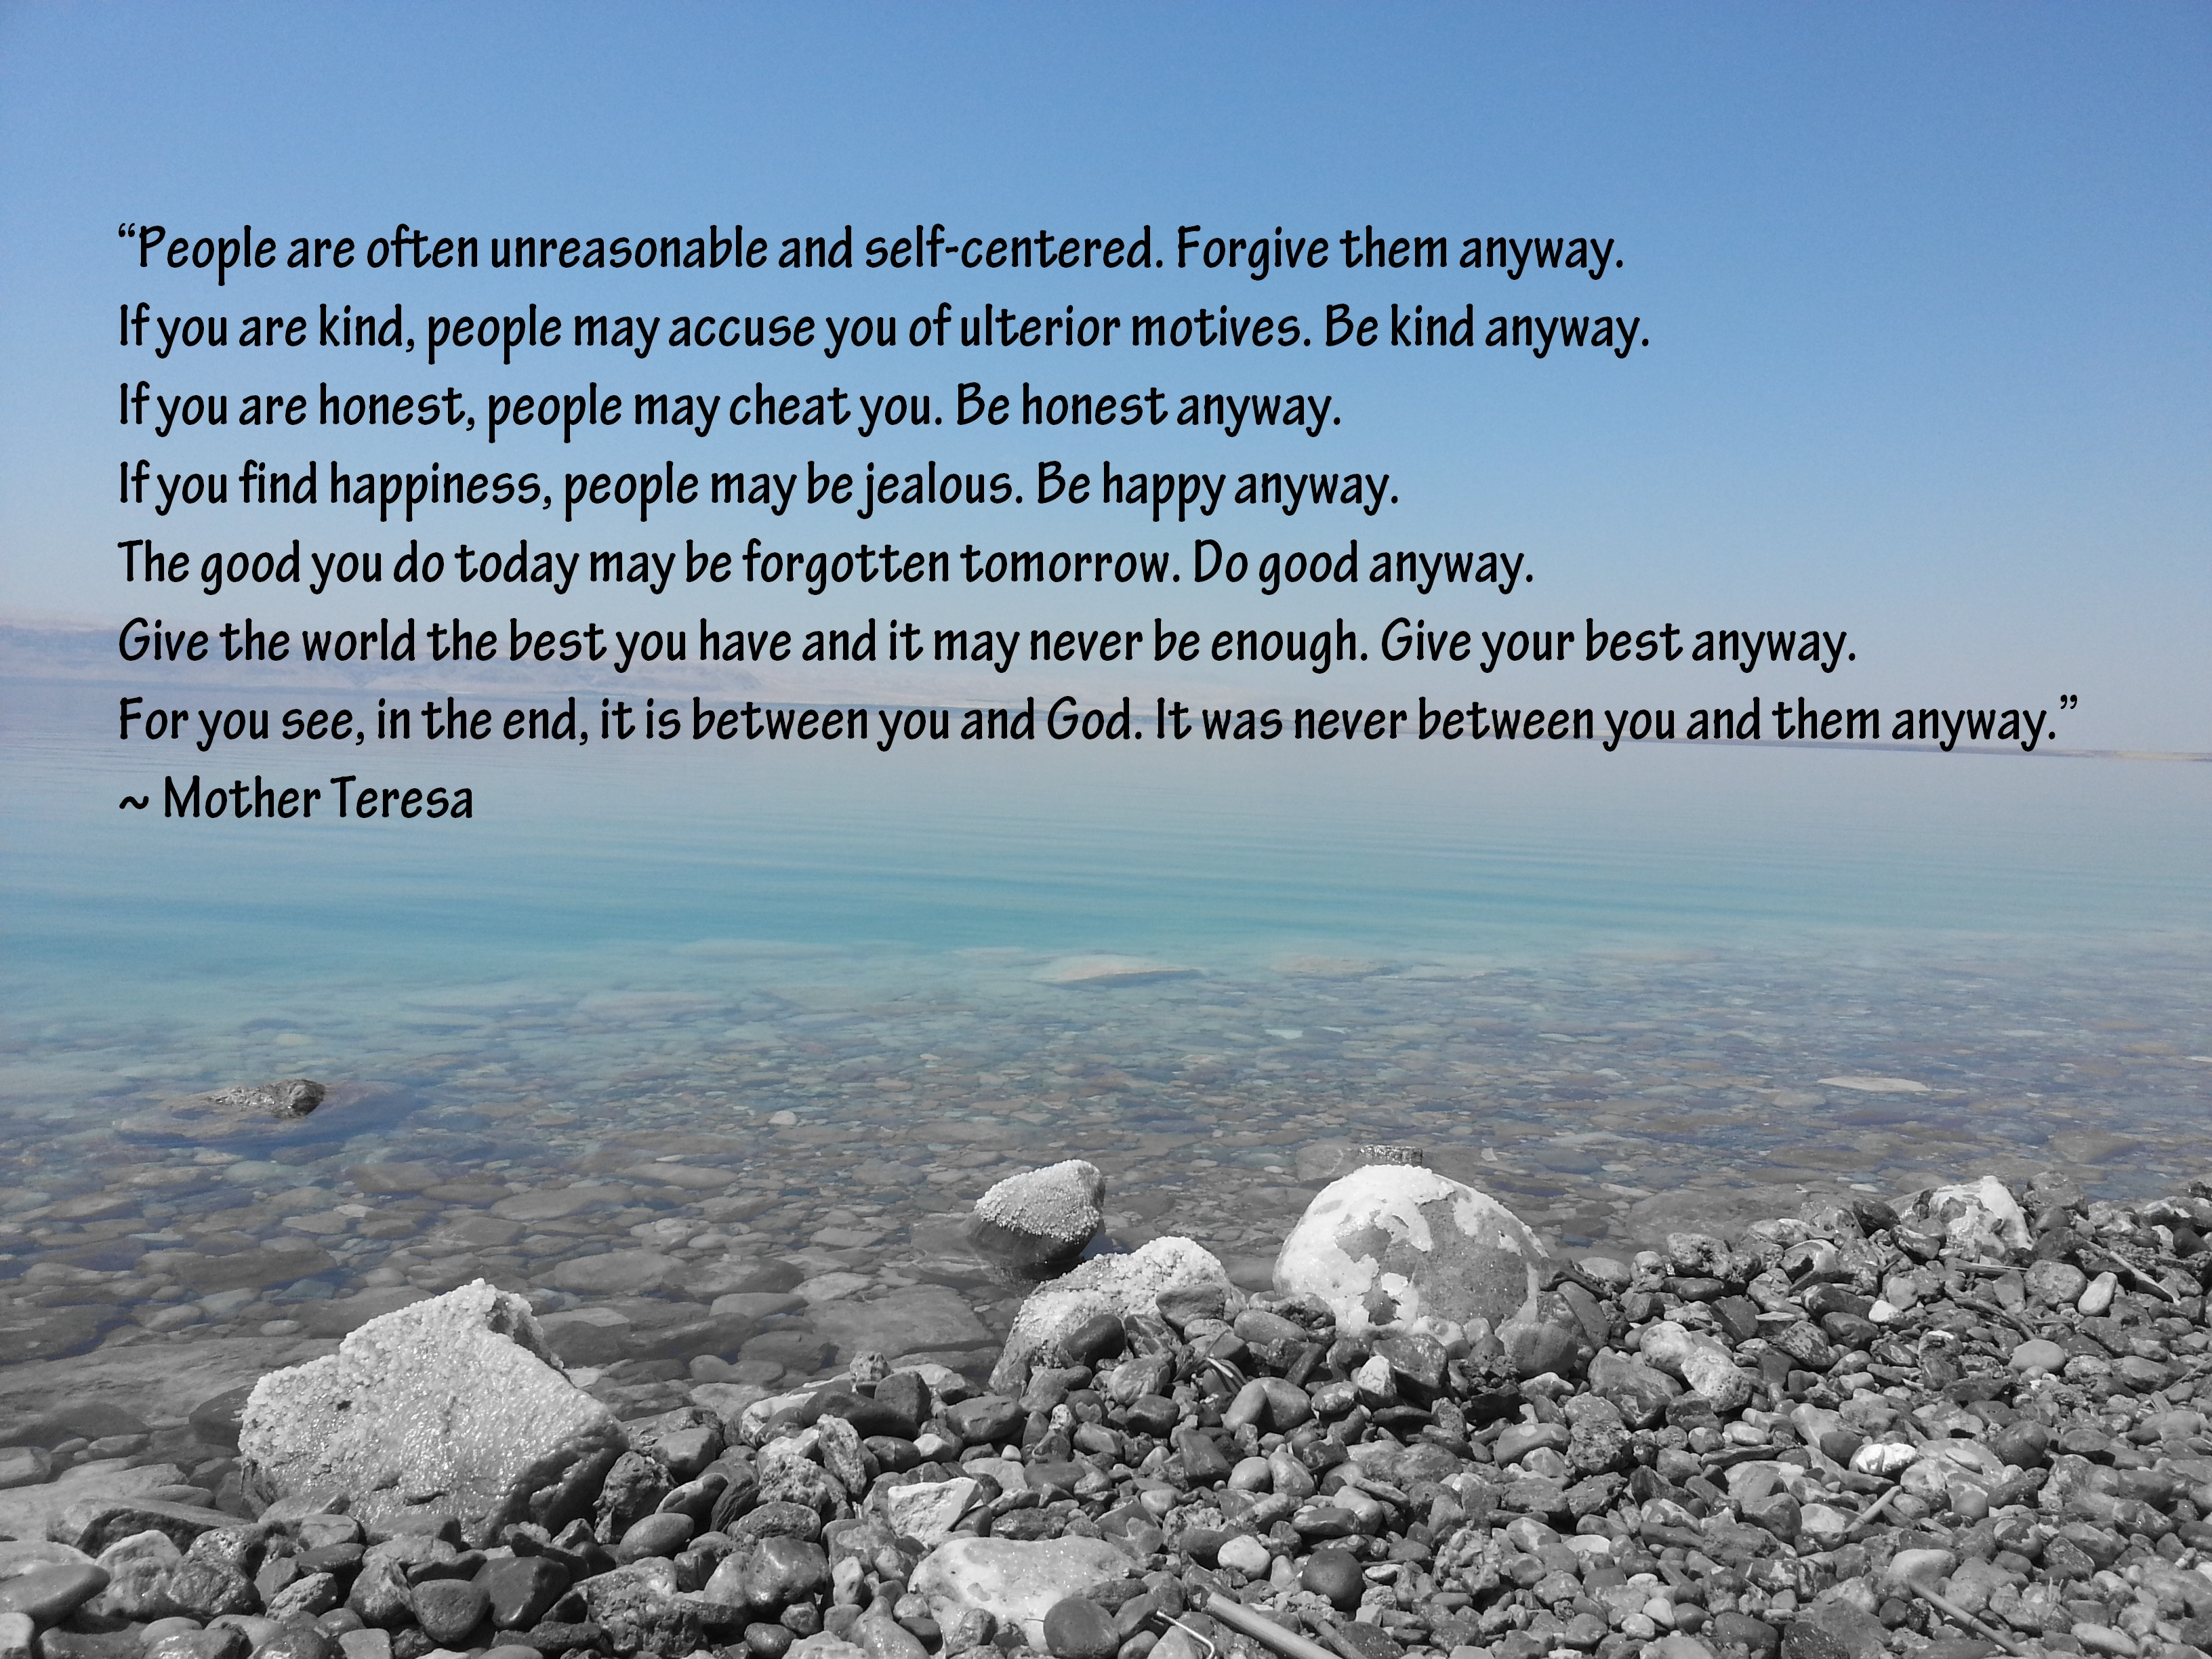 Mother Teresa Quotes Love Them Anyway Mother Teresa  Quote  Livingoutmypurpose